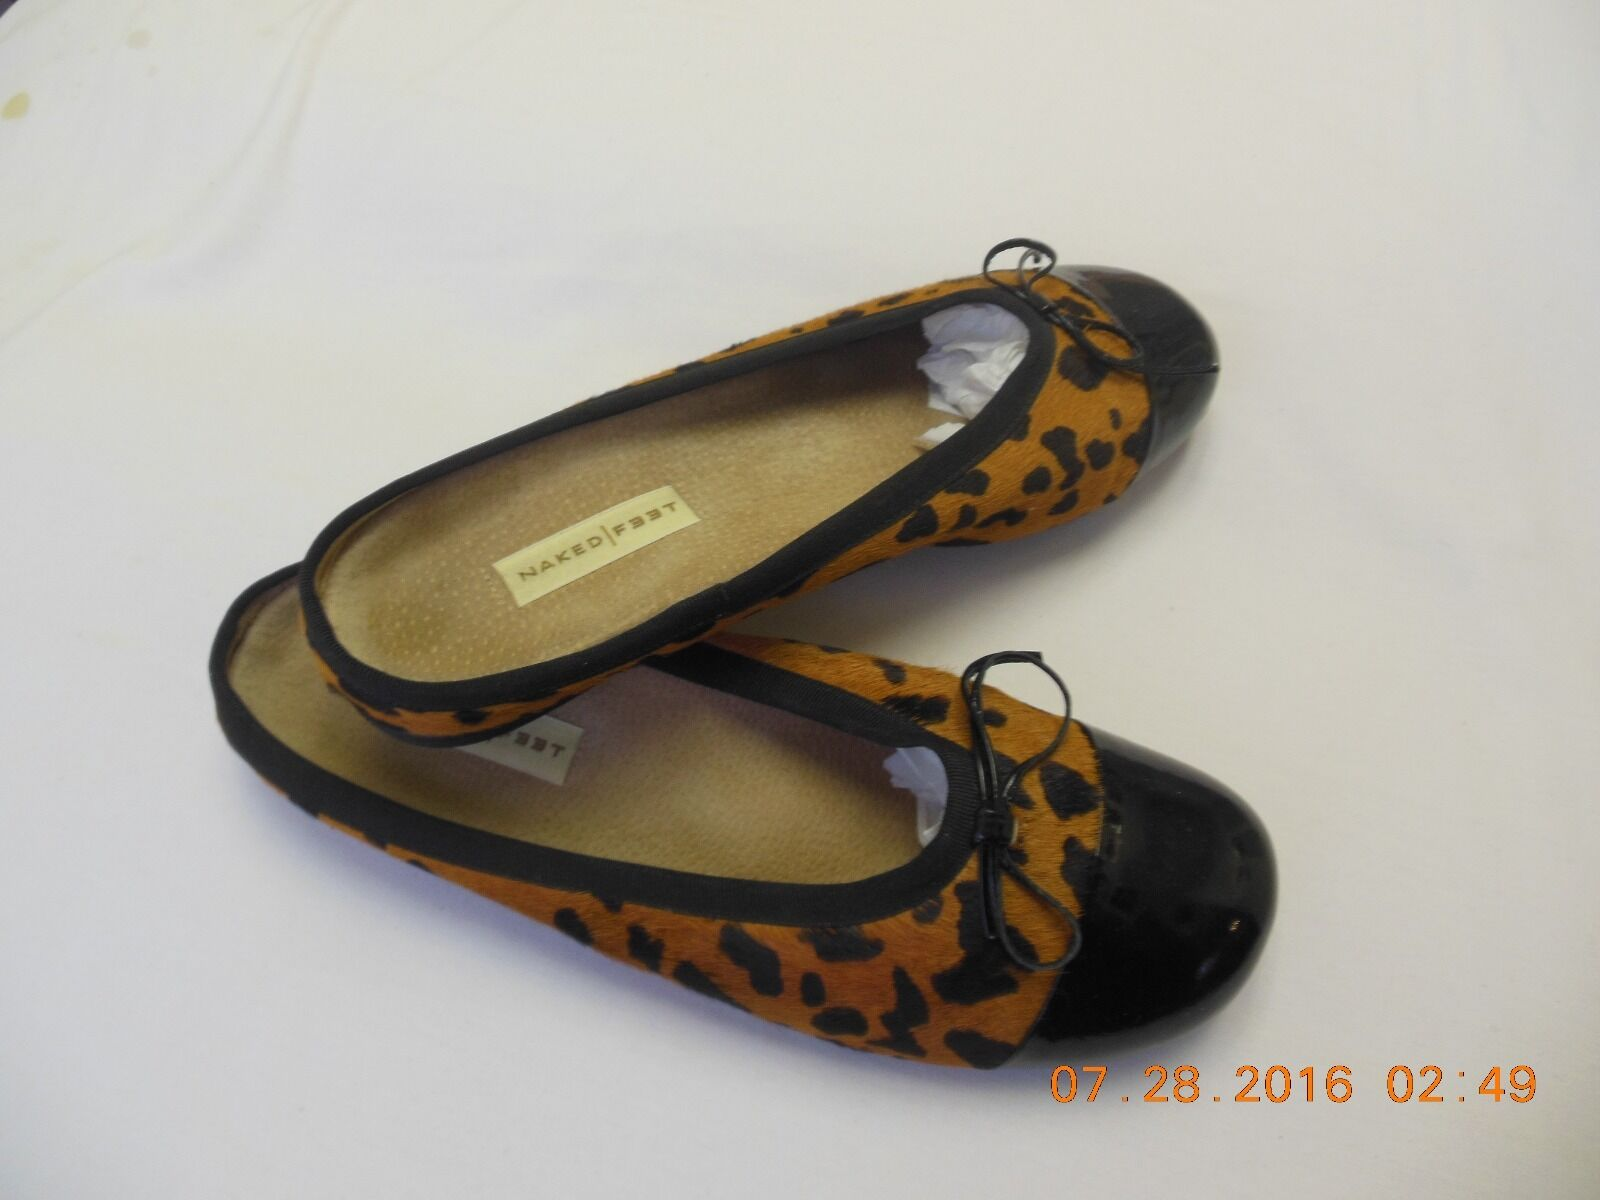 Calf skin leather animal print and patent leather skin slides size 10M b6fcc6